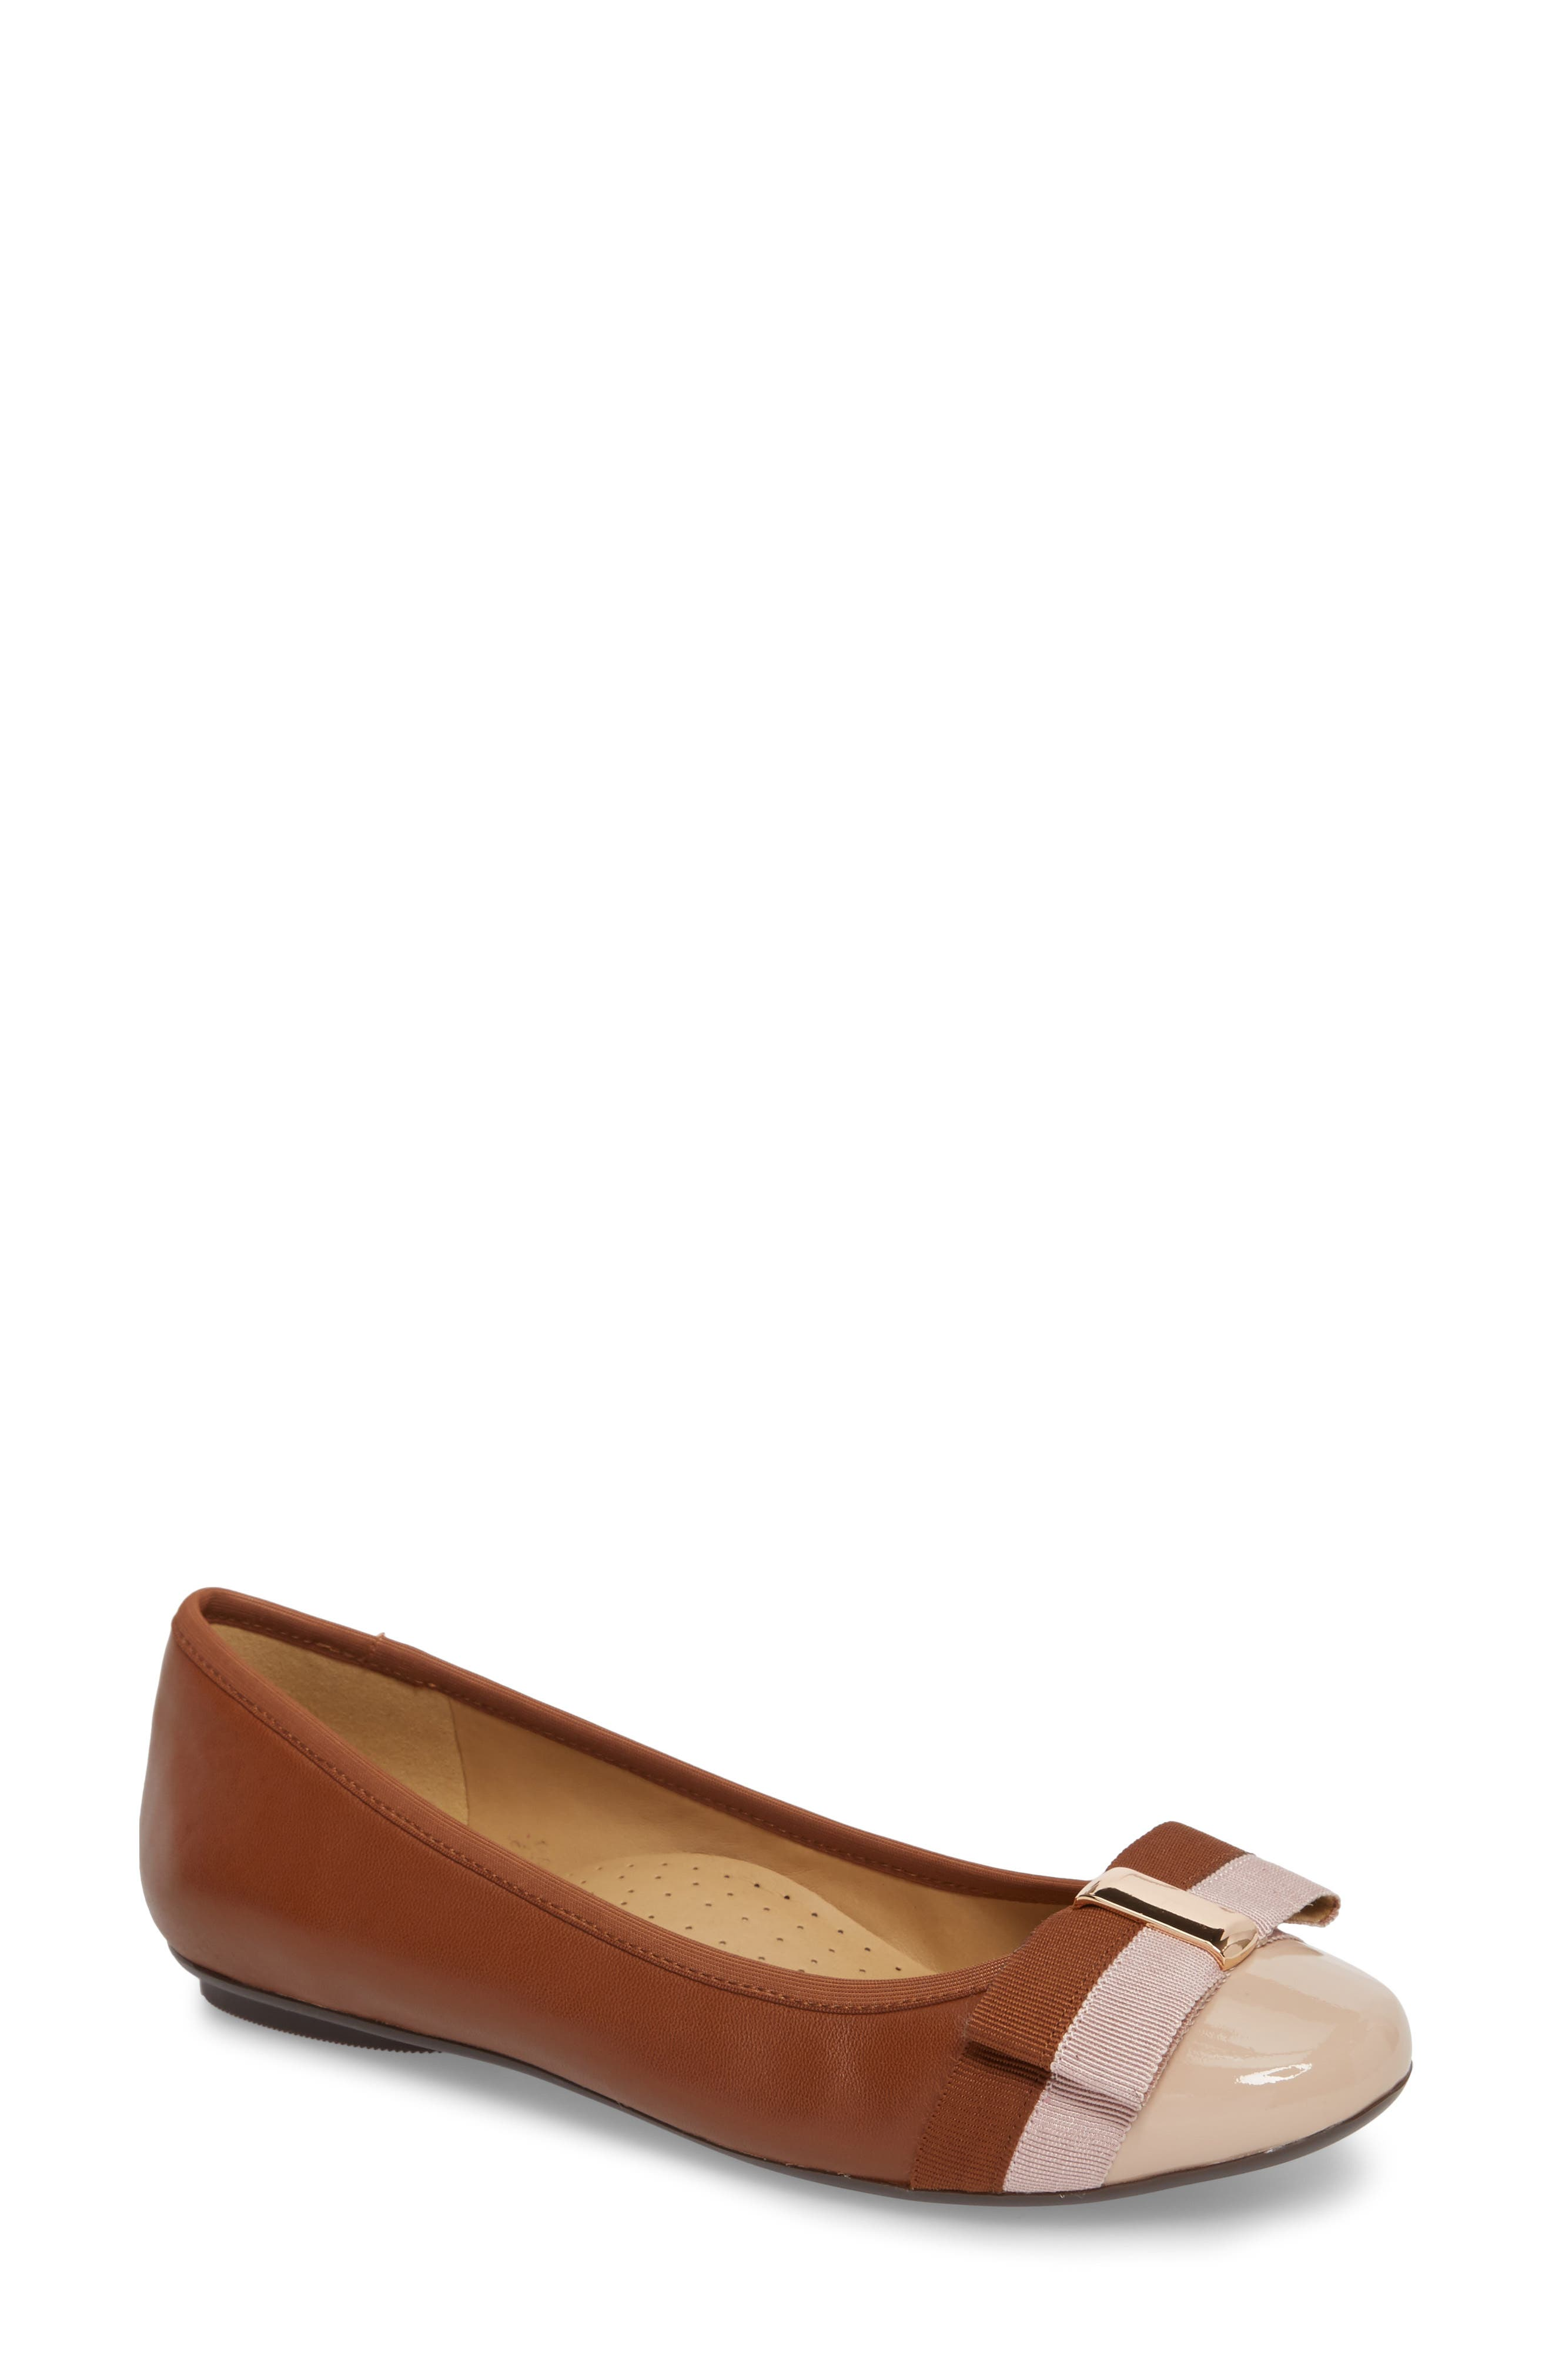 Salia Bow Flat,                             Main thumbnail 1, color,                             Cognac Leather